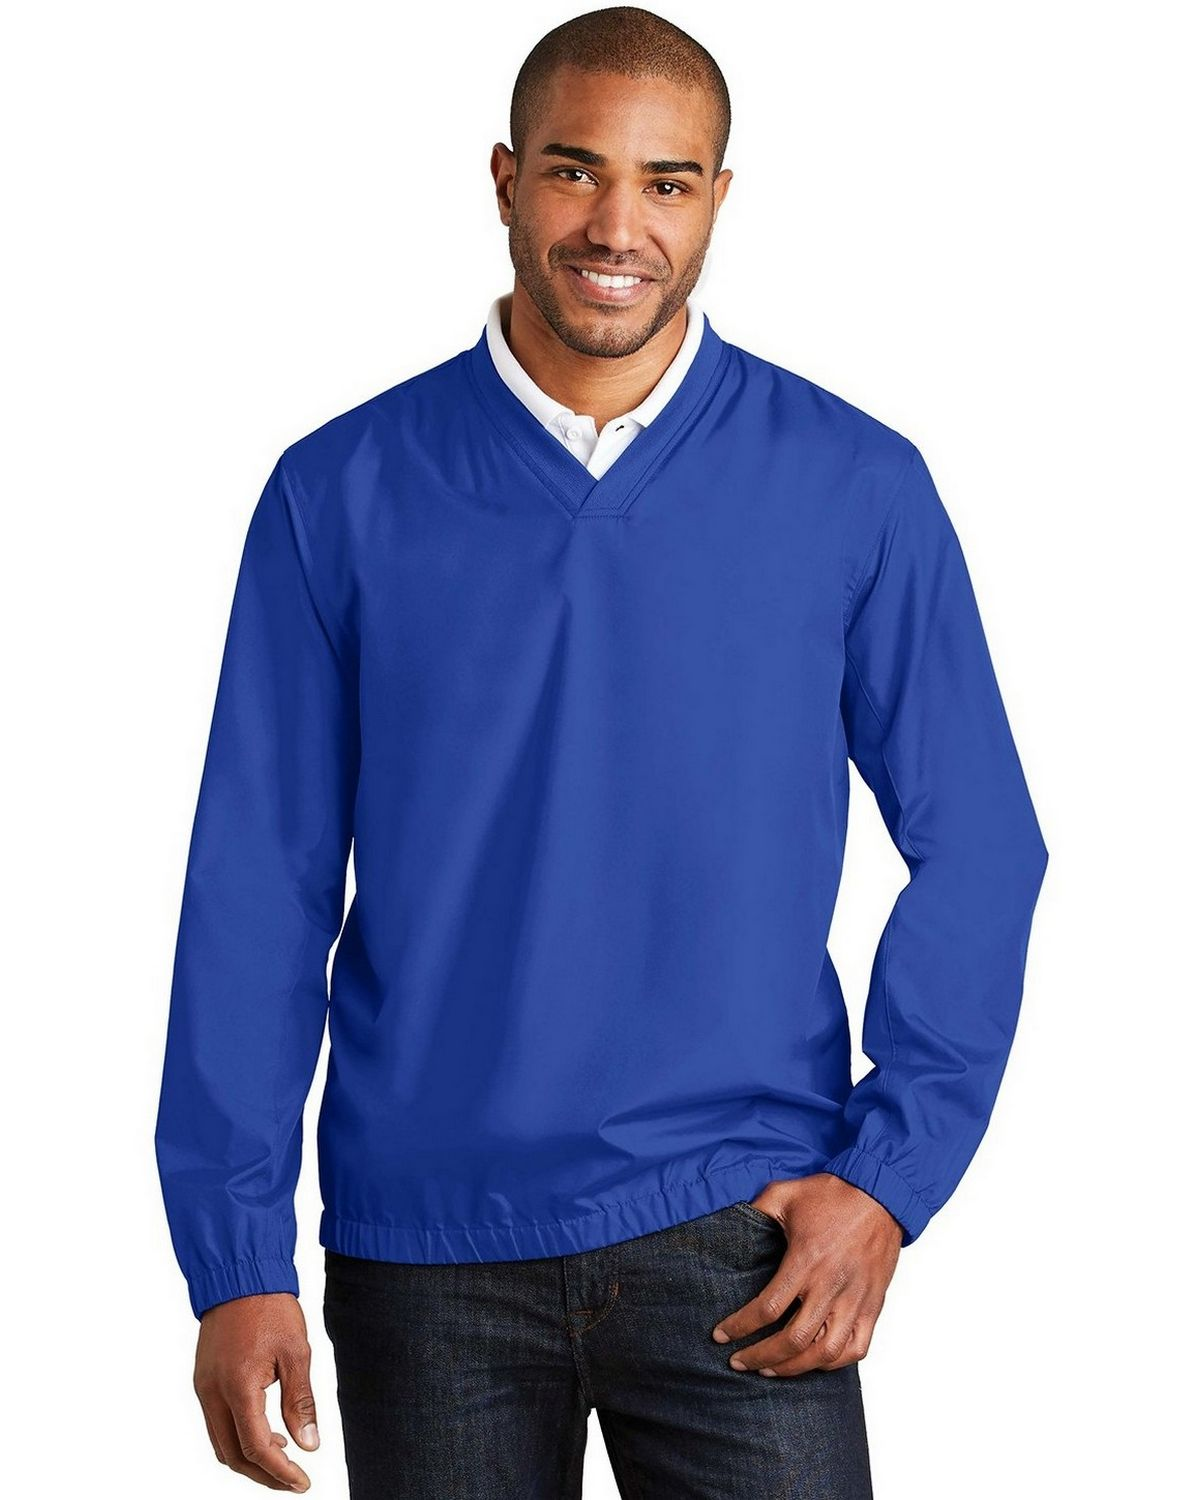 Port Authority J342 Zephyr V-Neck Pullover - True Royal - M J342